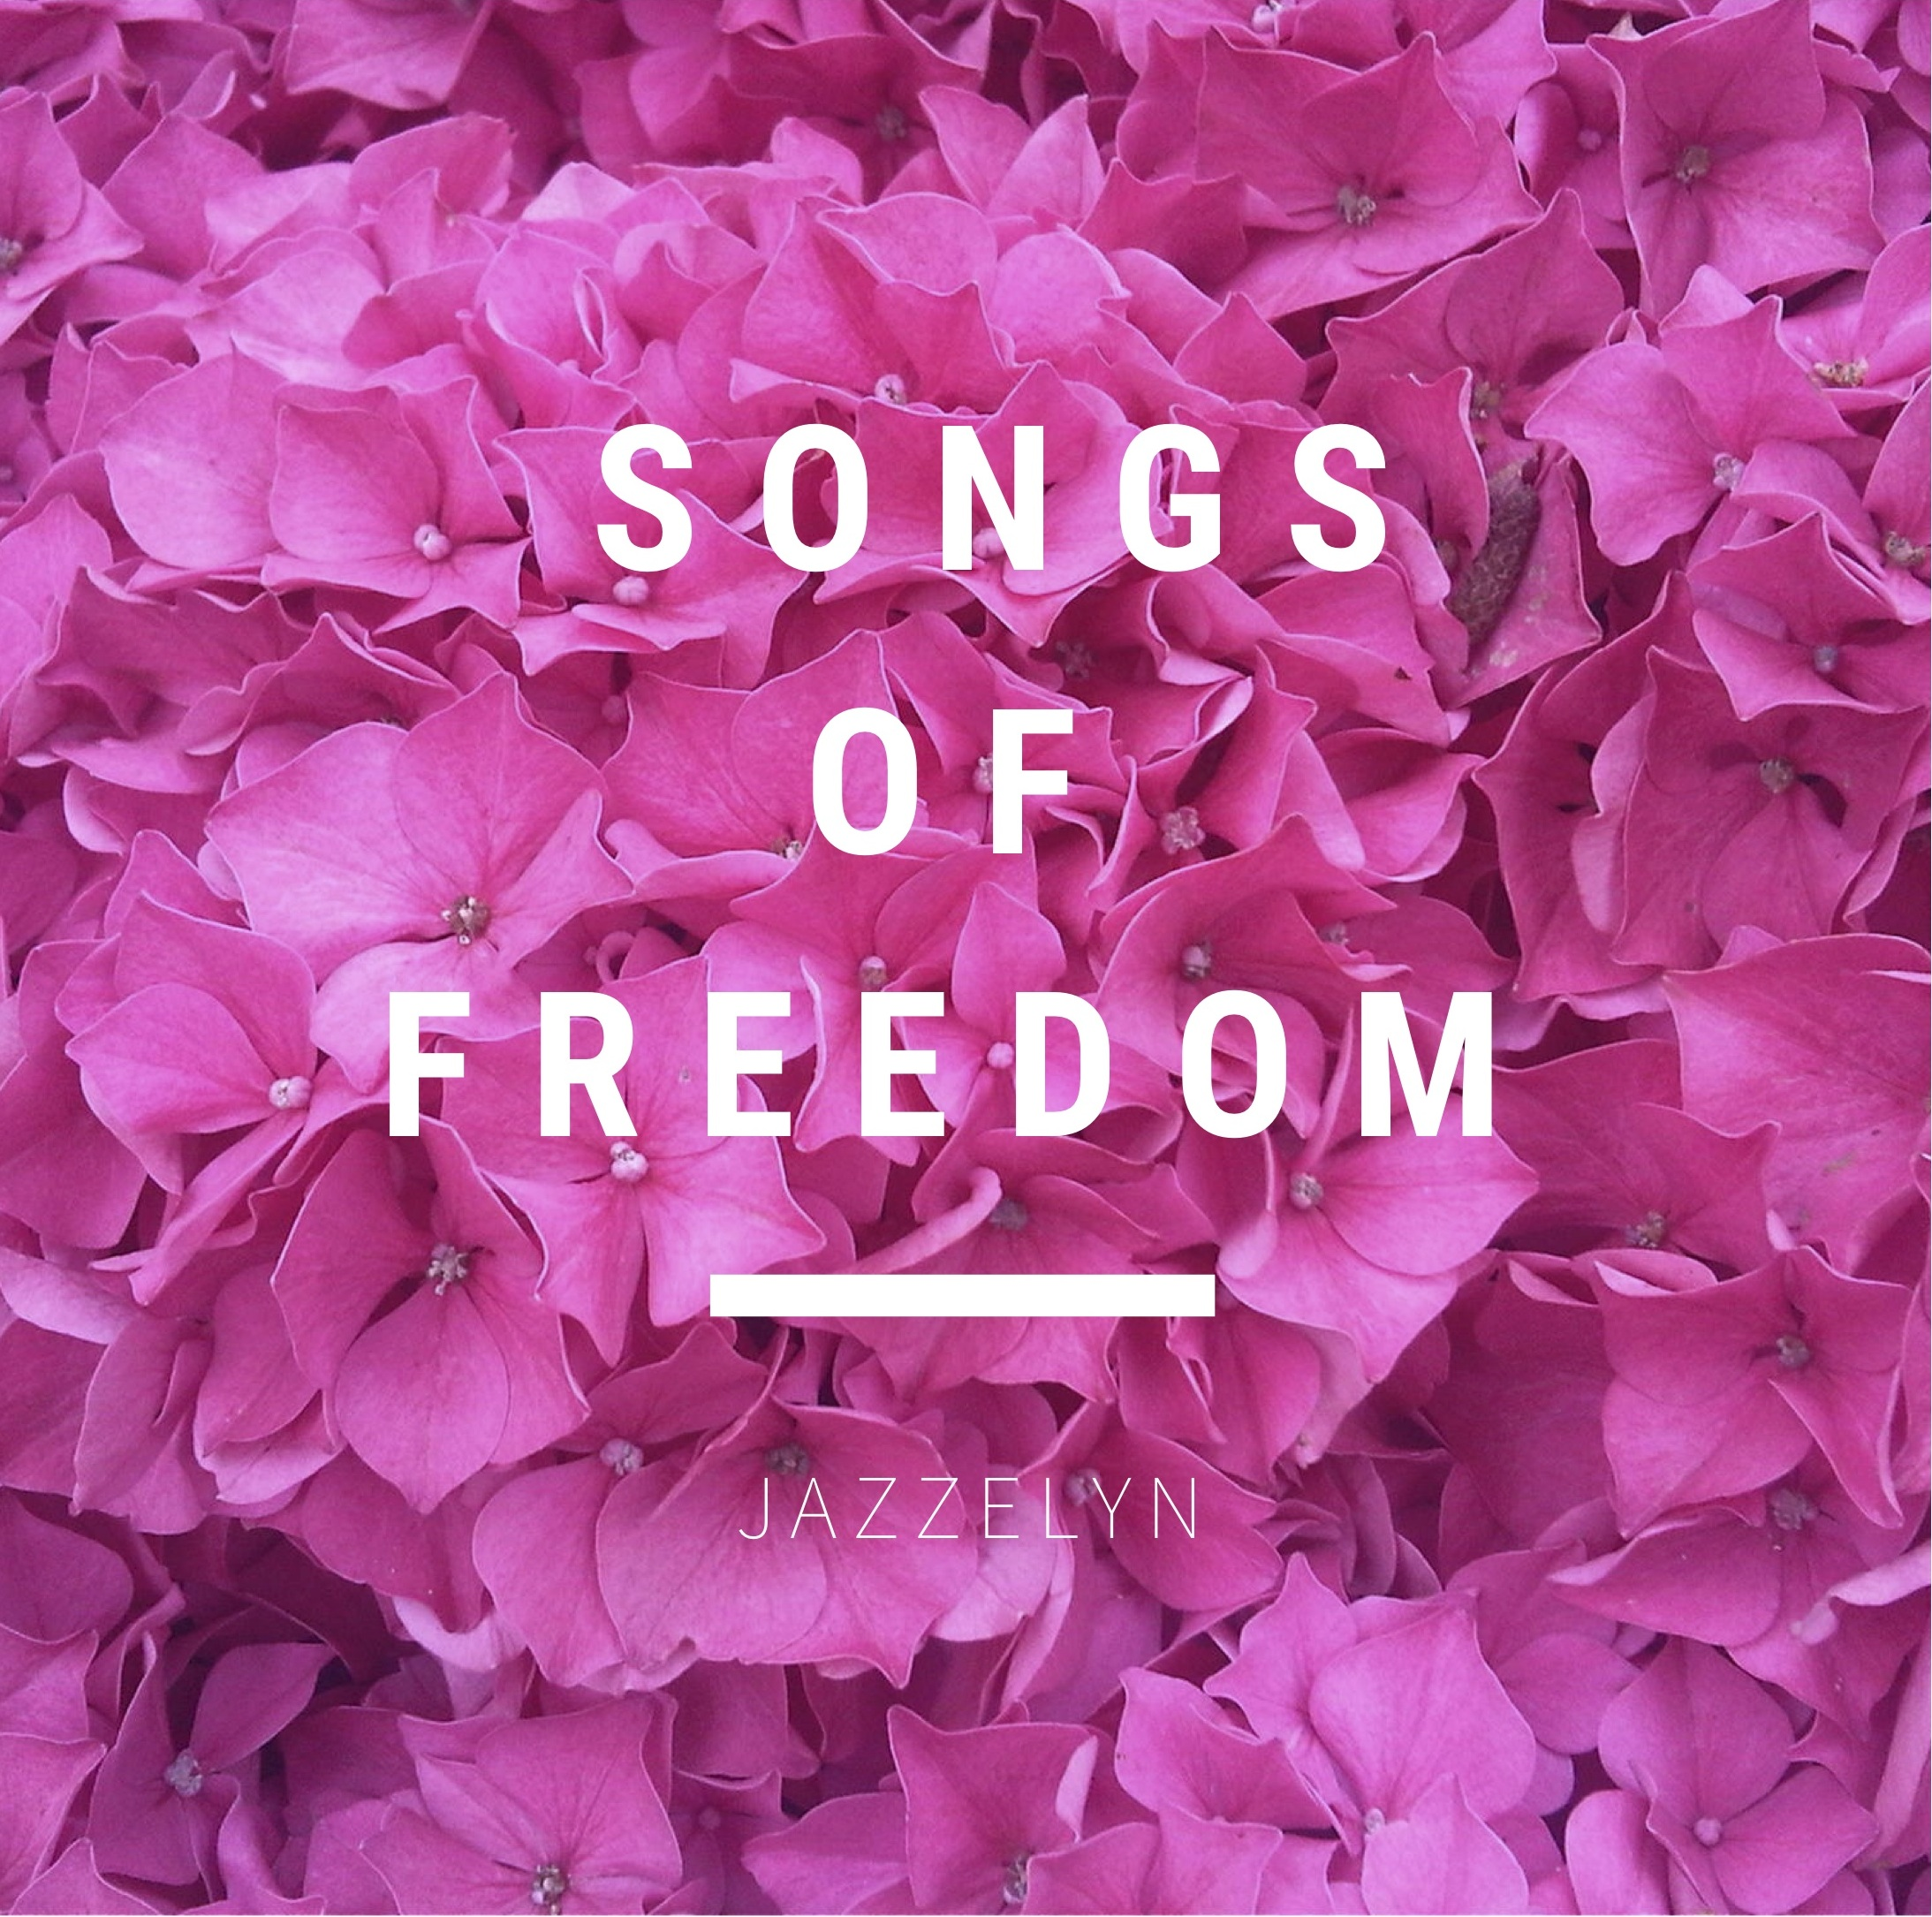 Songs of Freedom-Album Cover.jpg